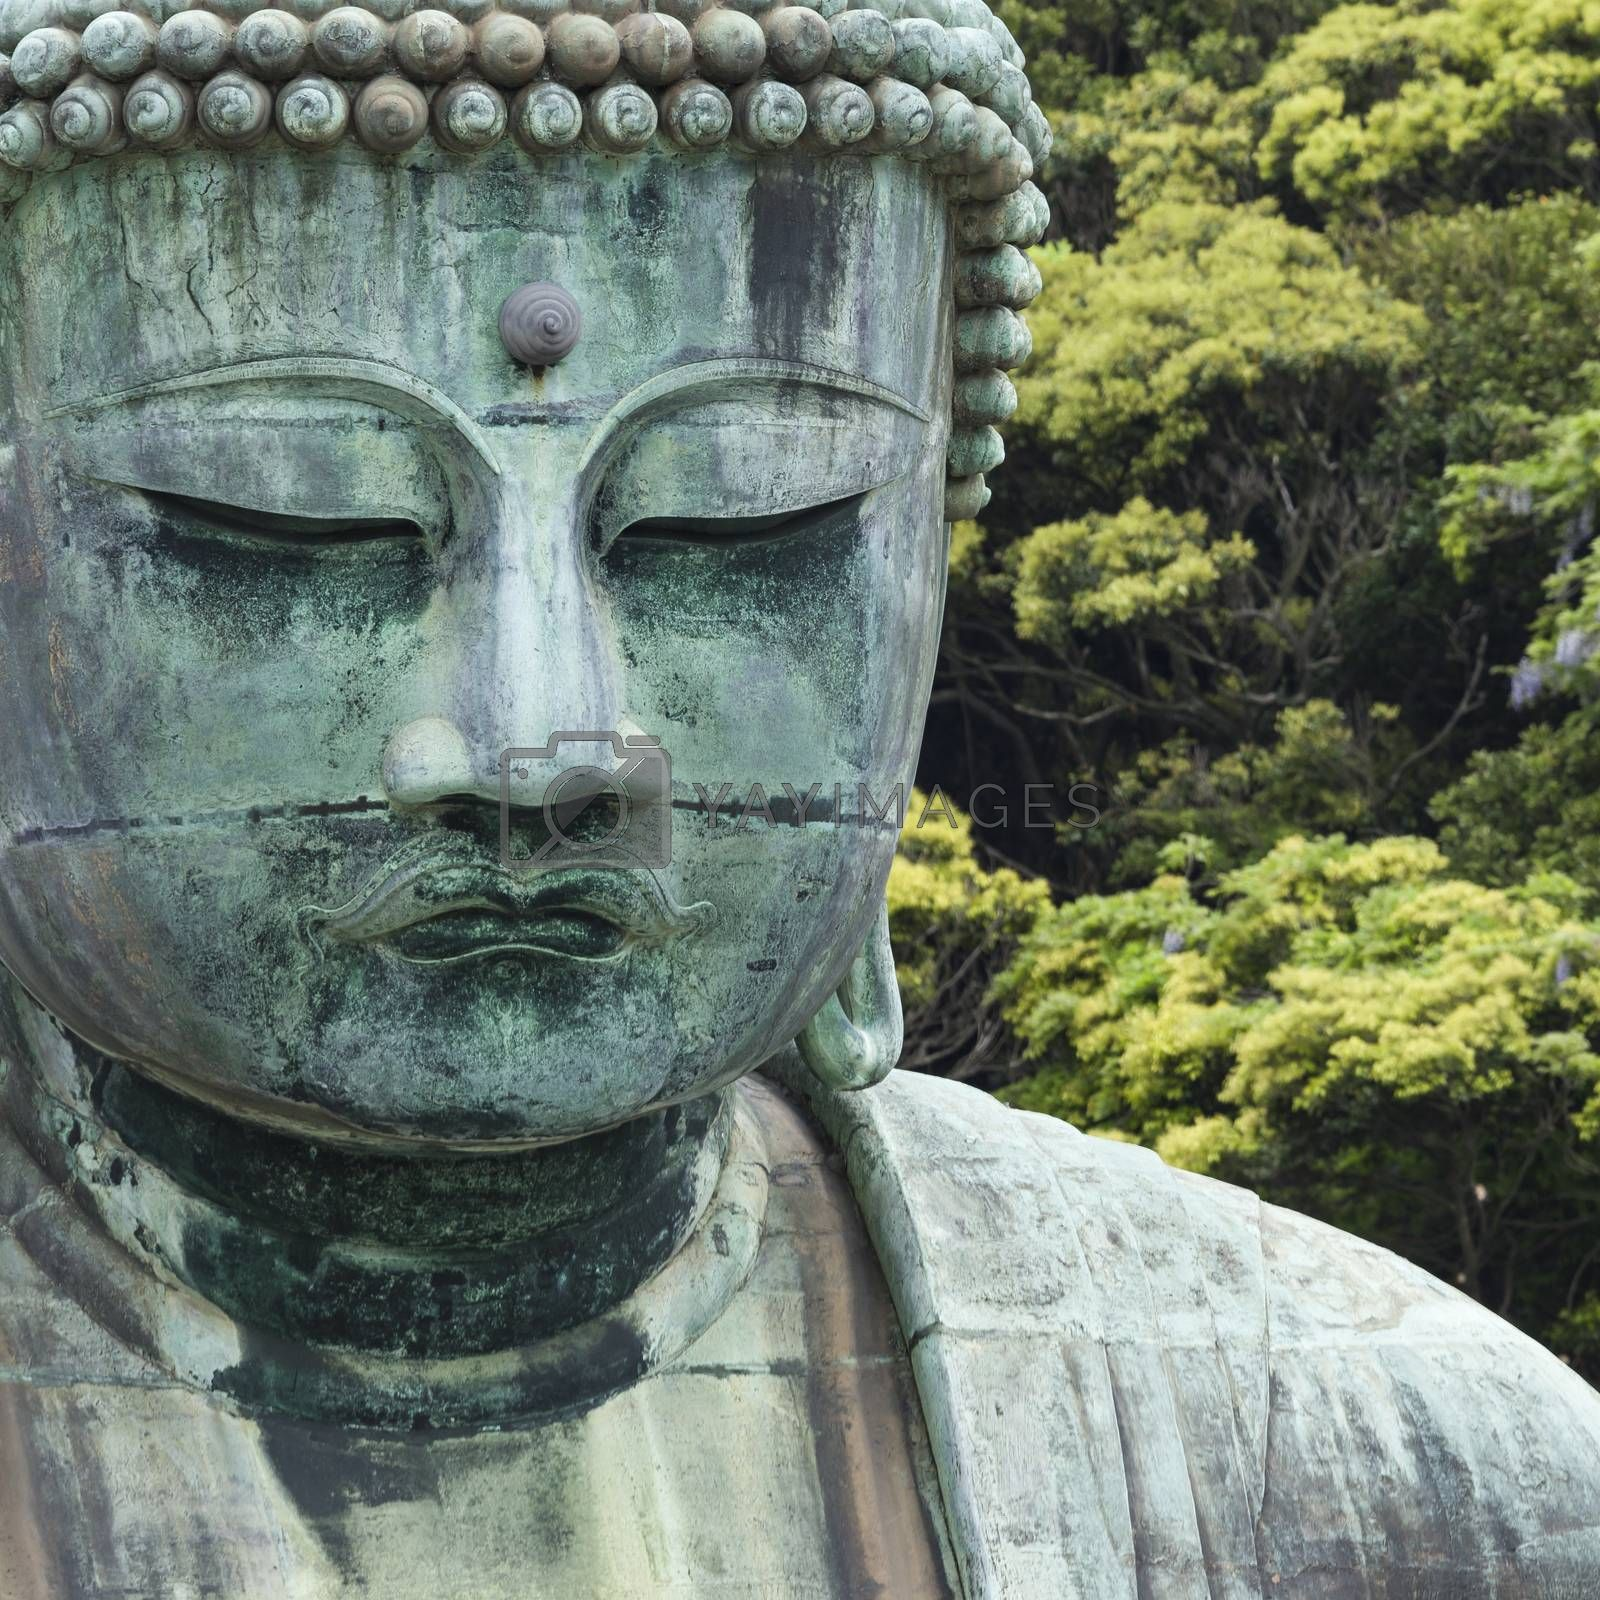 The Great Buddha (Daibutsu) on the grounds of Kotokuin Temple in Kamakura, Japan.